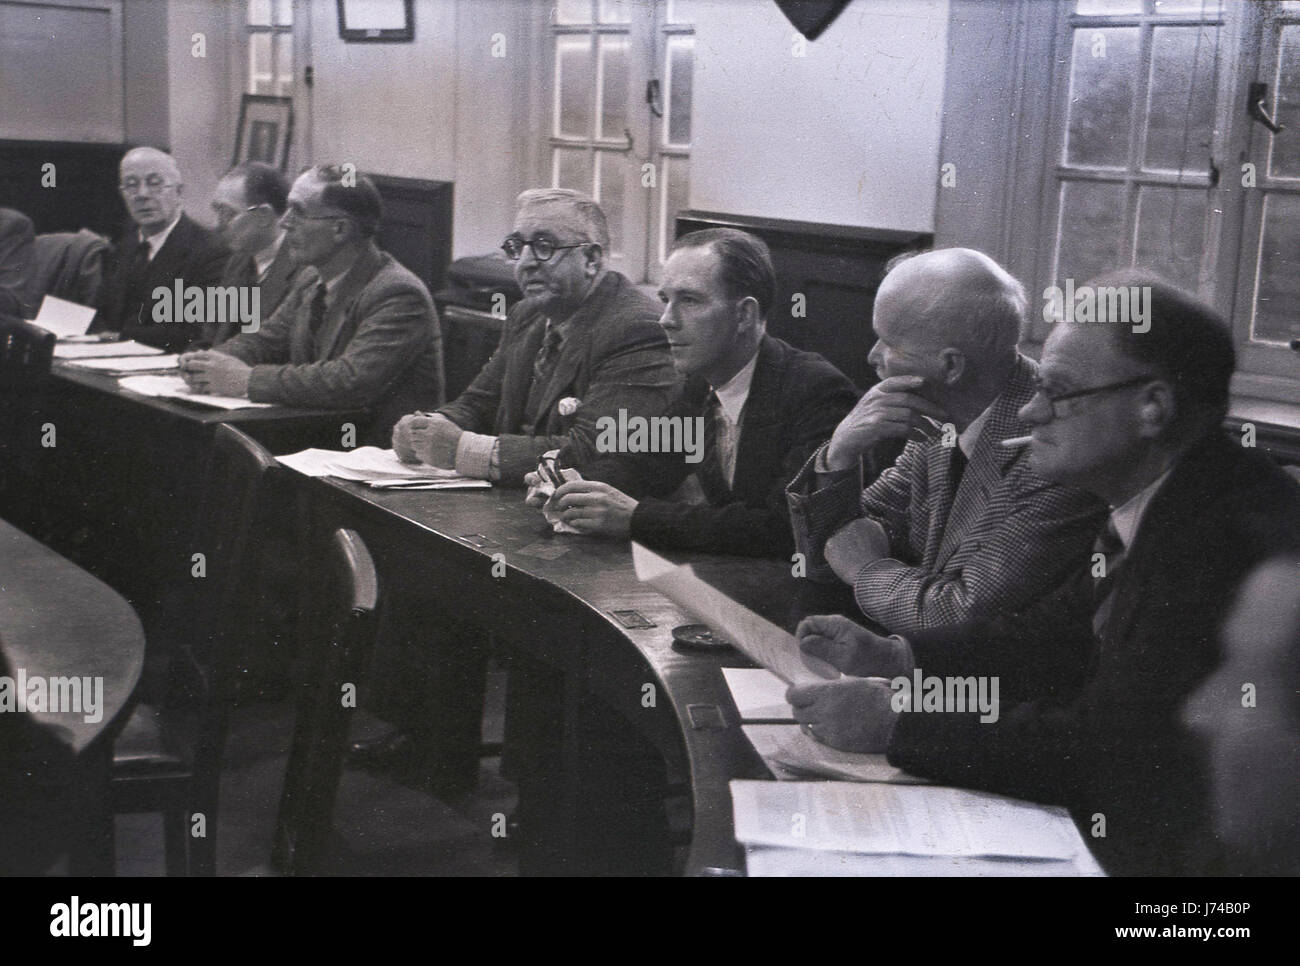 1950s, picture showst male councillors wearing jacket and ties with minutes attending a district council meeting. - Stock Image